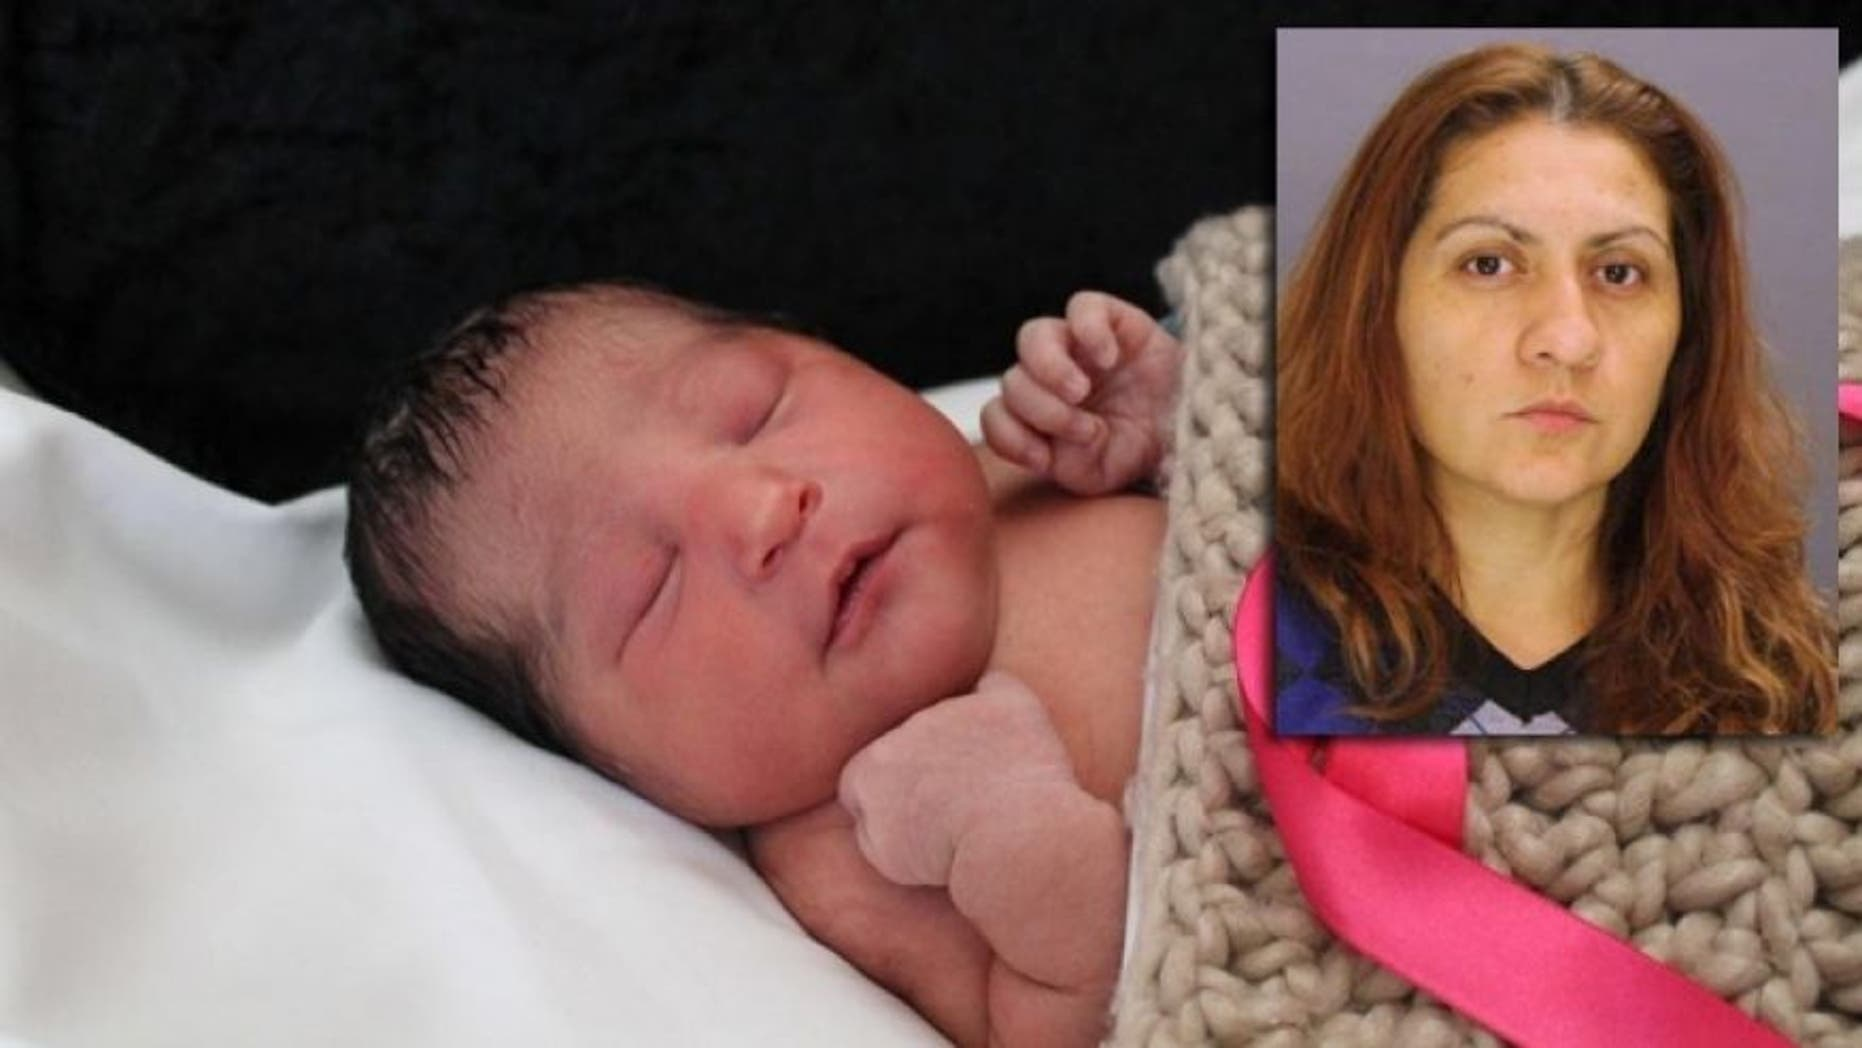 Baby Sophia Victoria Gonzalez Abarca, who went missing after her mother was shot to death, and Yesenia Sesma (inset) who was convicted of killing Sophia's 27-year-old mother, Laura Abarca-Nogueda, and taking the child to Texas.